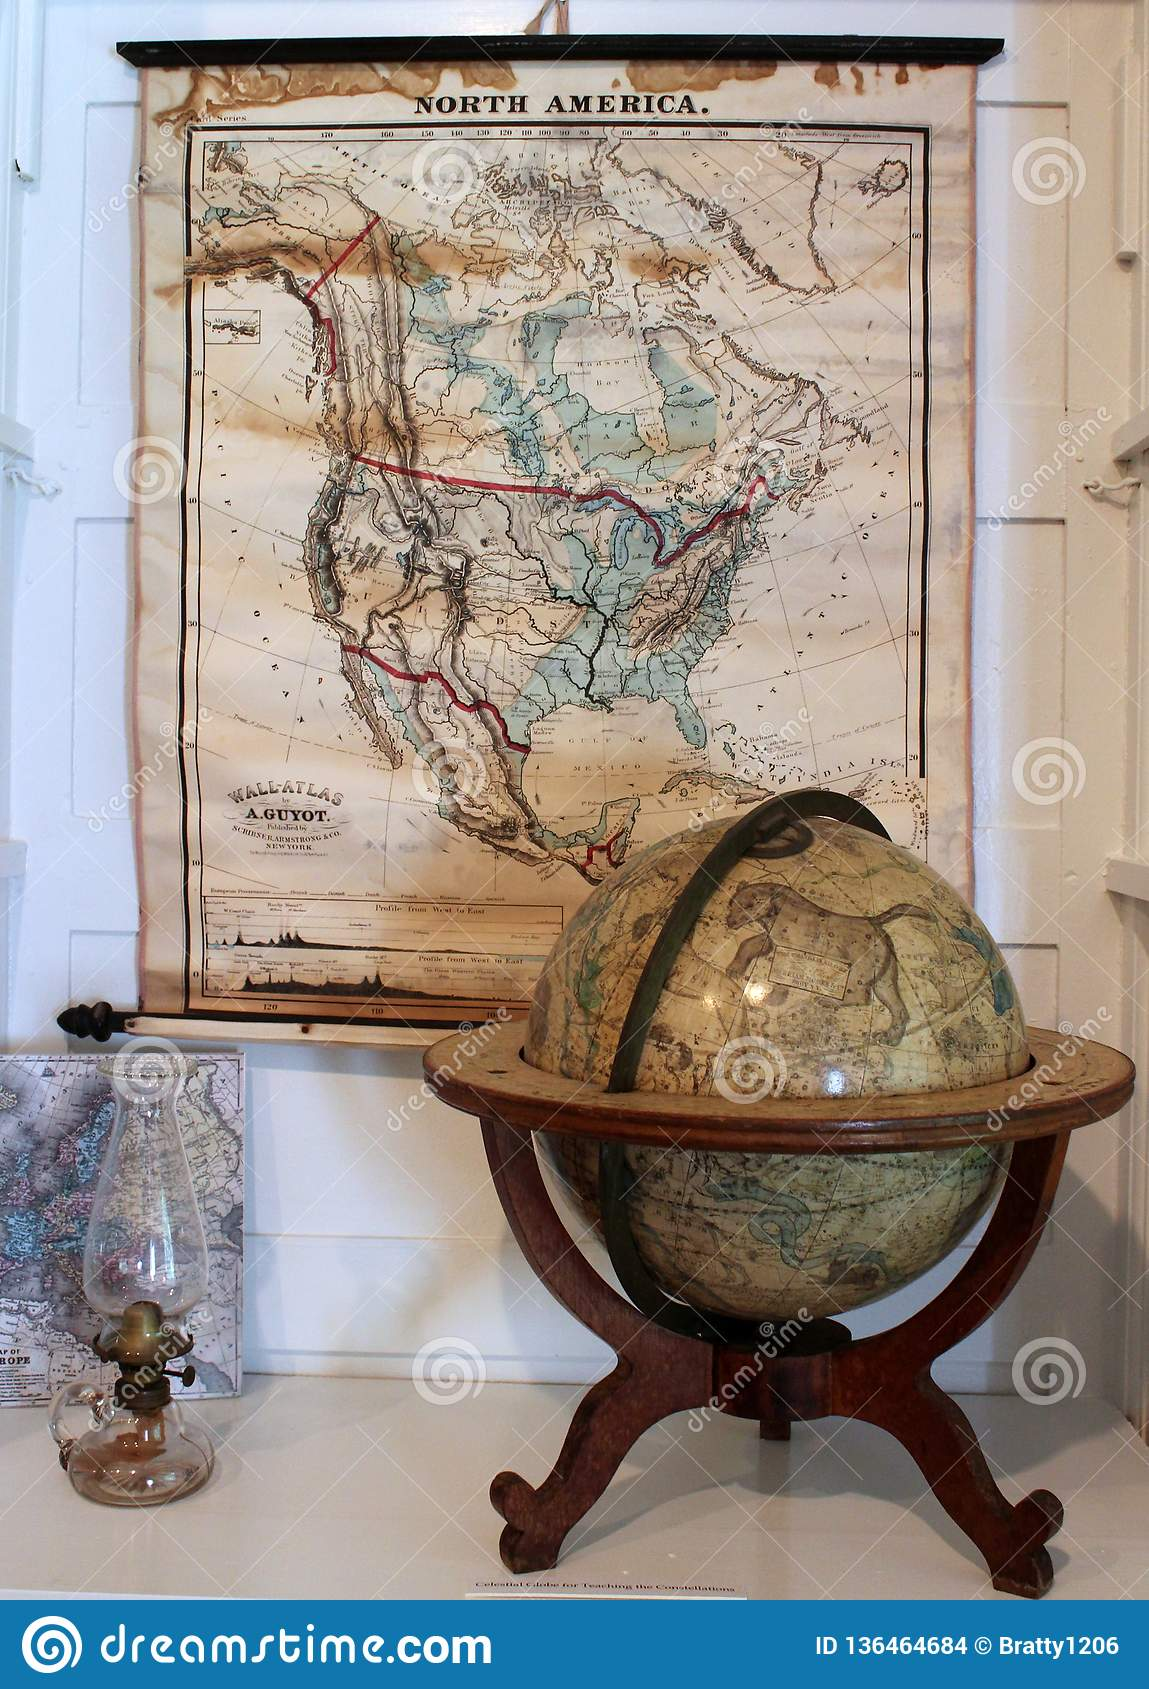 Maps and globes with other historic items depicting life and inventions at Oneida Community Mansion House, Oneida New York, 2018